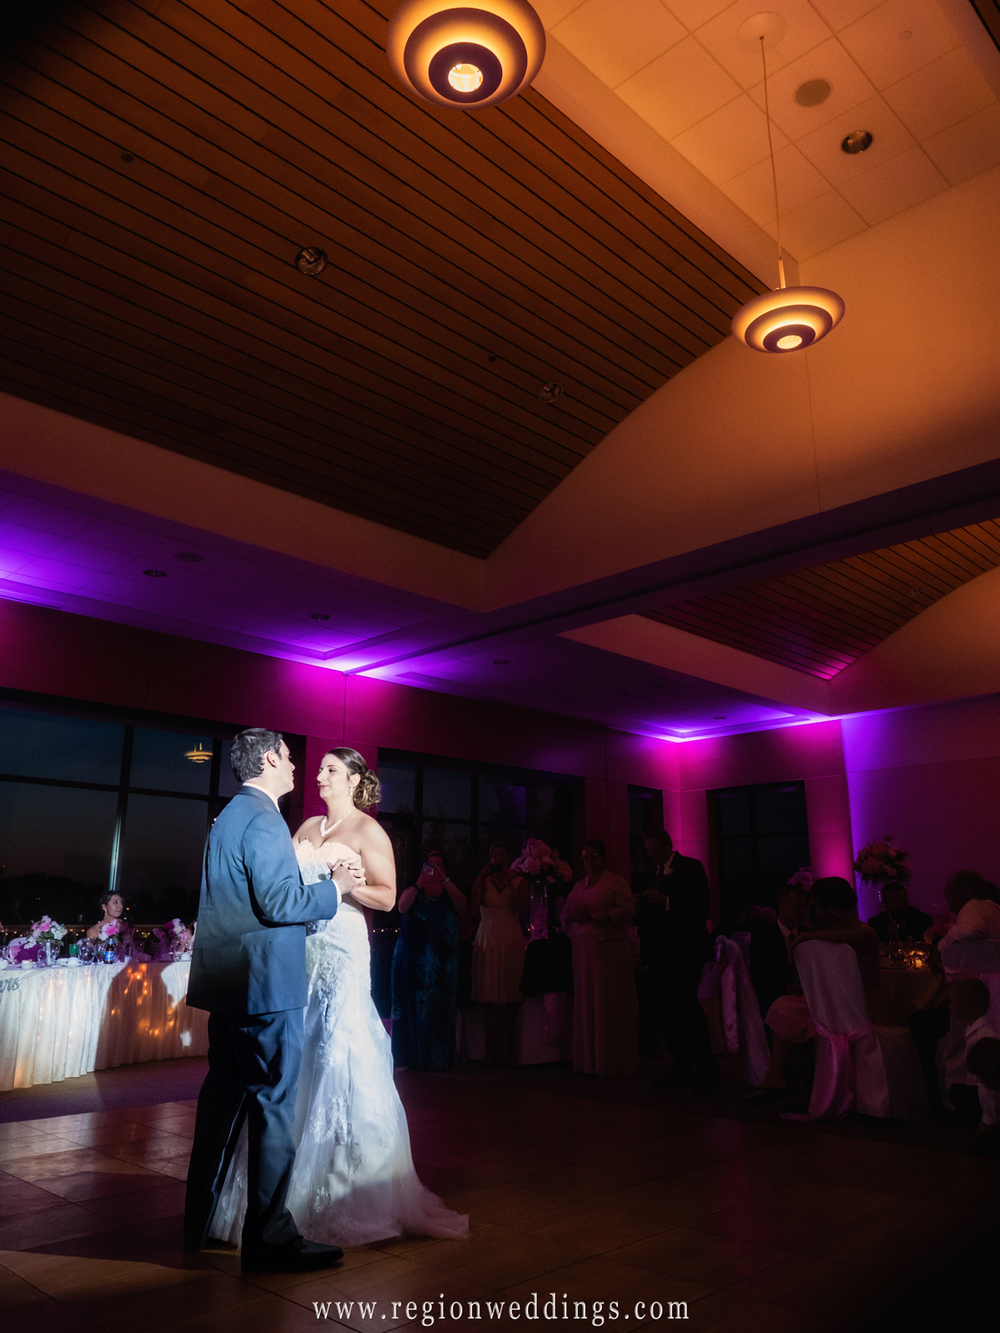 First dance for the bride and groom at the Centennial Park Clubhouse.